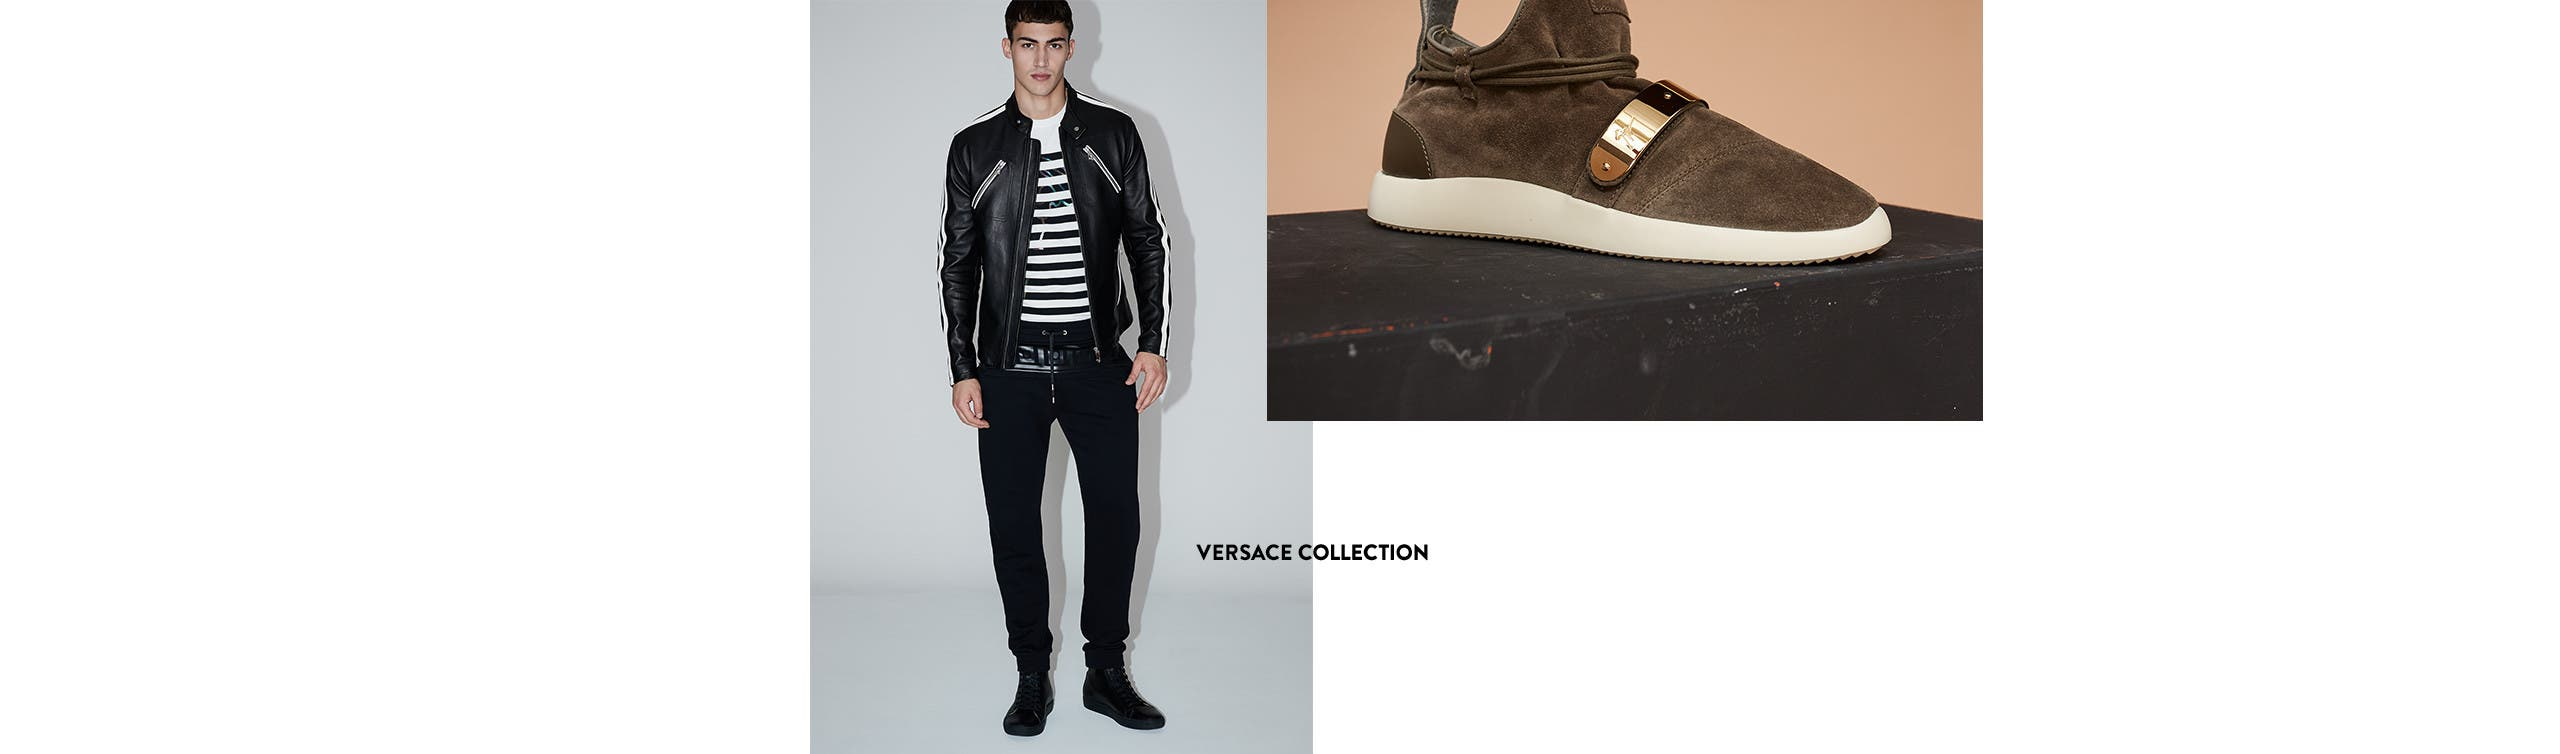 Versace Collection clothes for men.